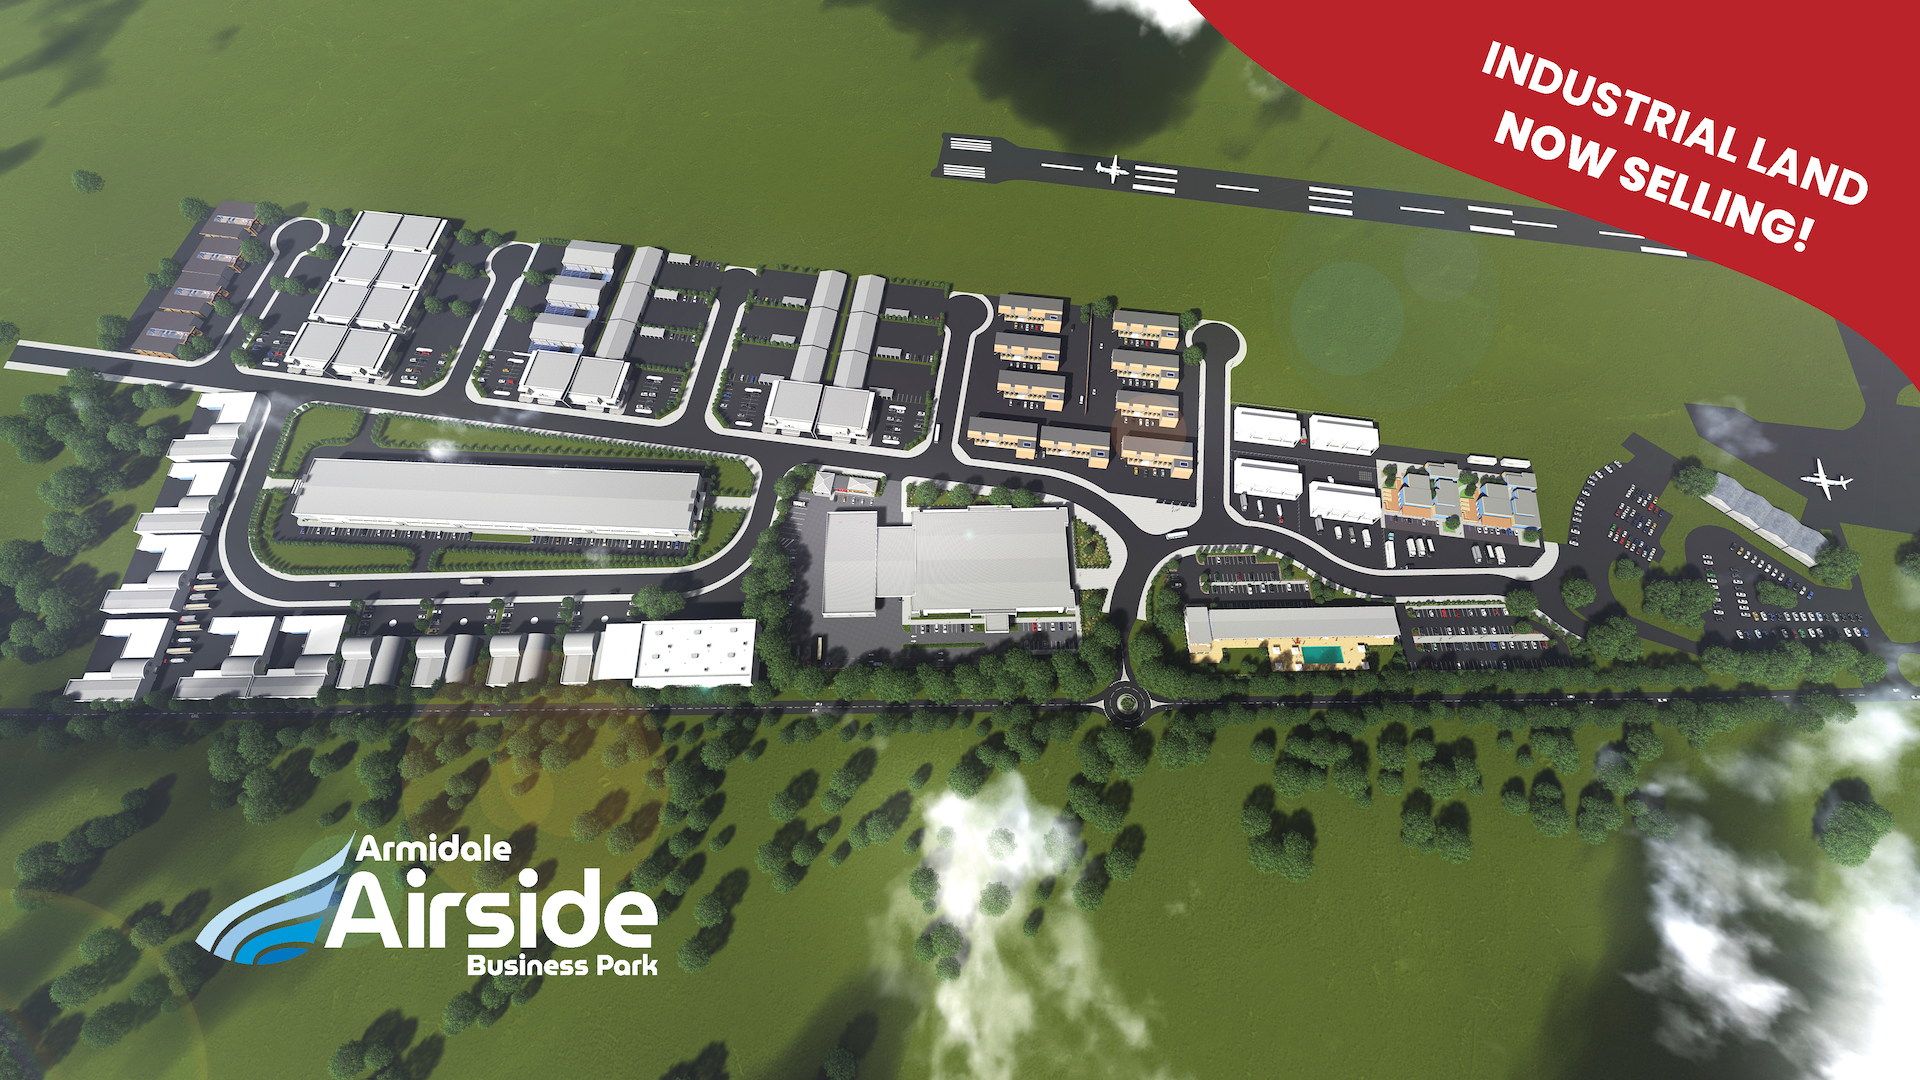 Armidale Airside Planning Graphics